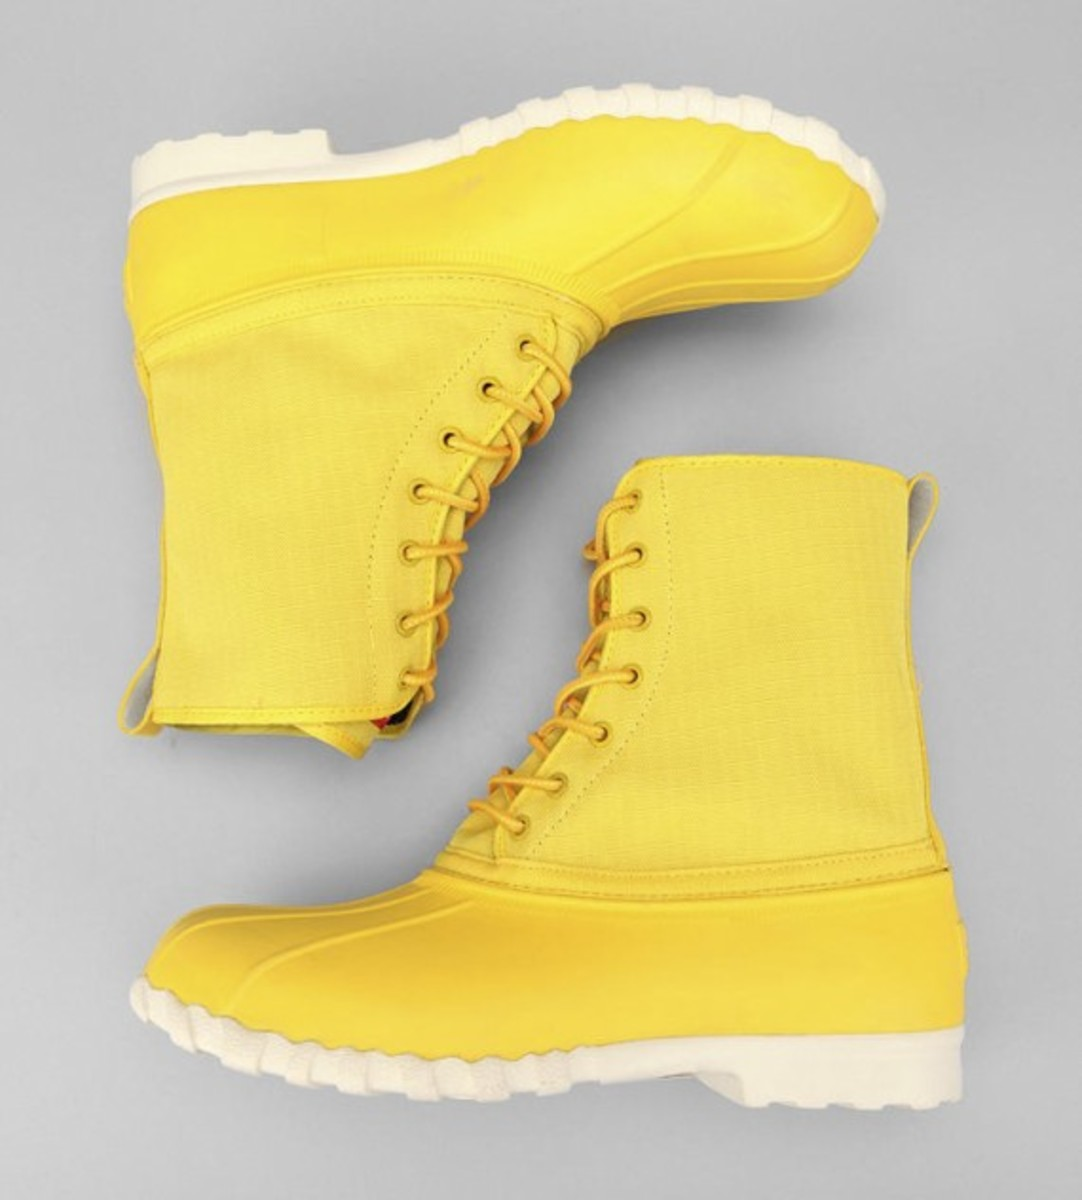 native-jimmy-duck-boots-yellow-01